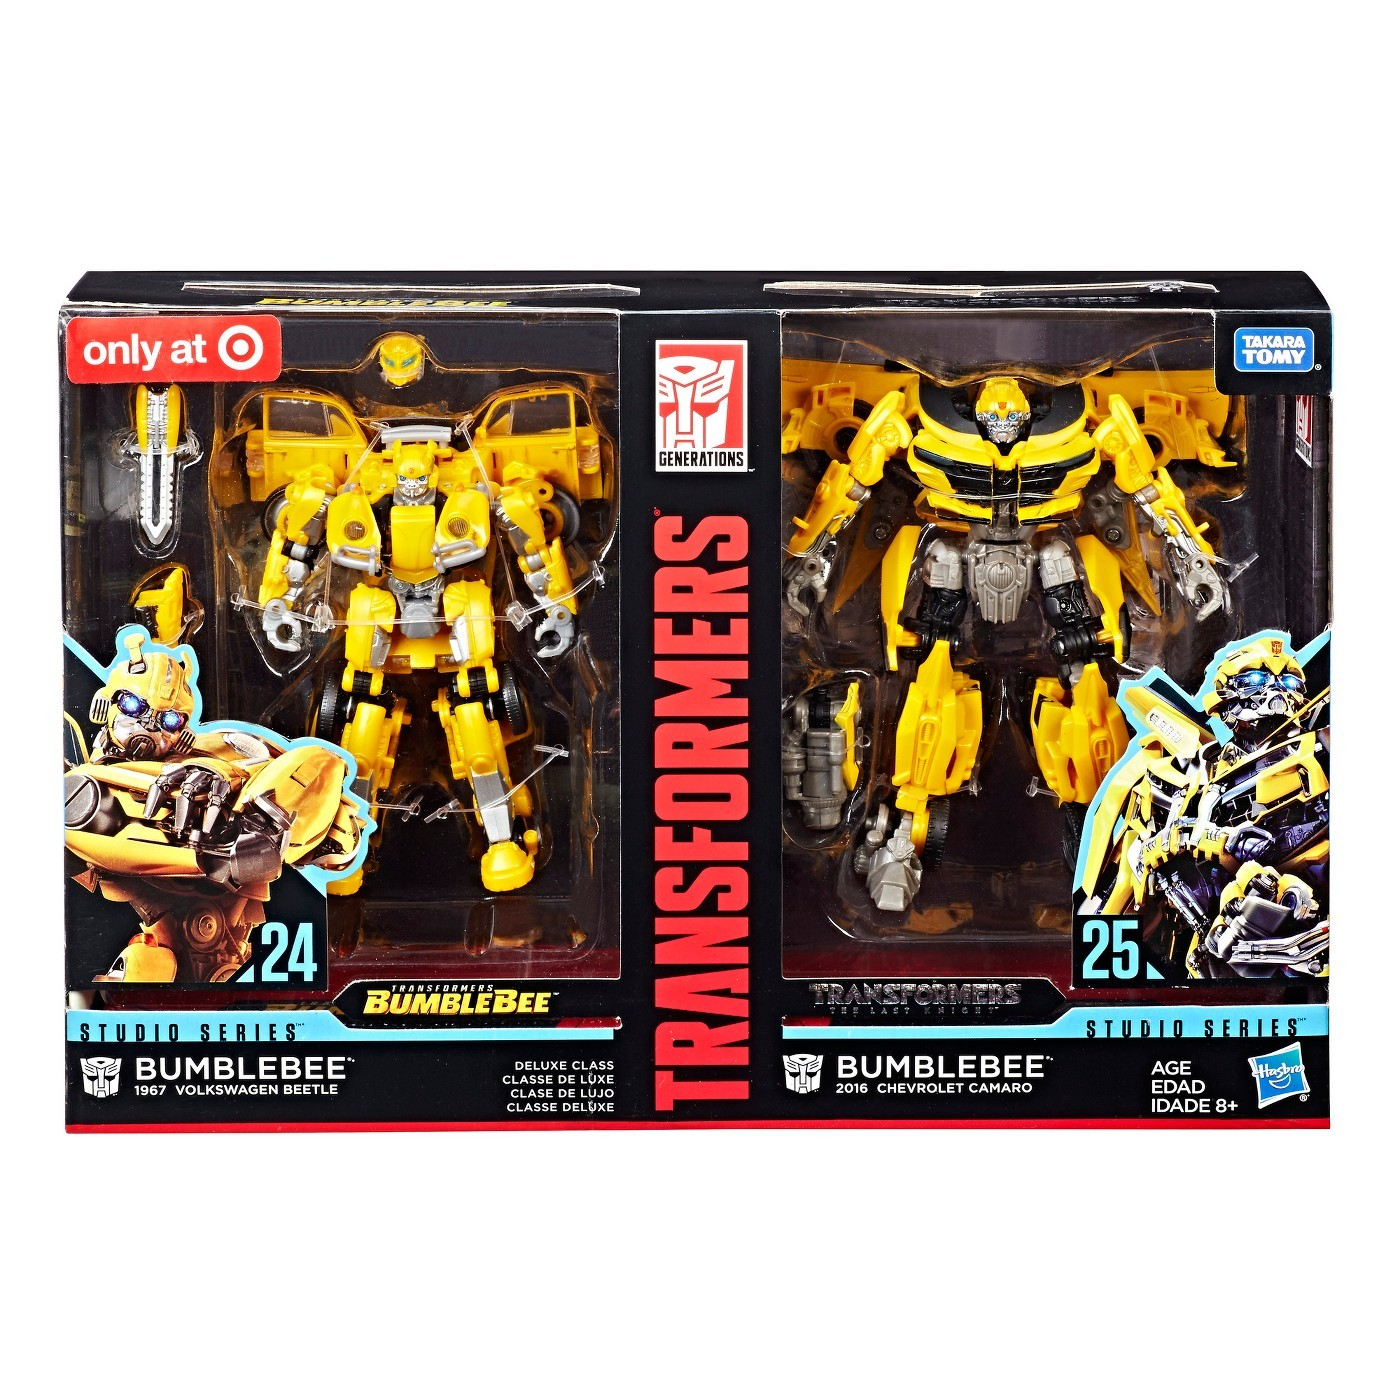 Transformers Studio Series Bumblebee Then And Now 2 Pack Now Online